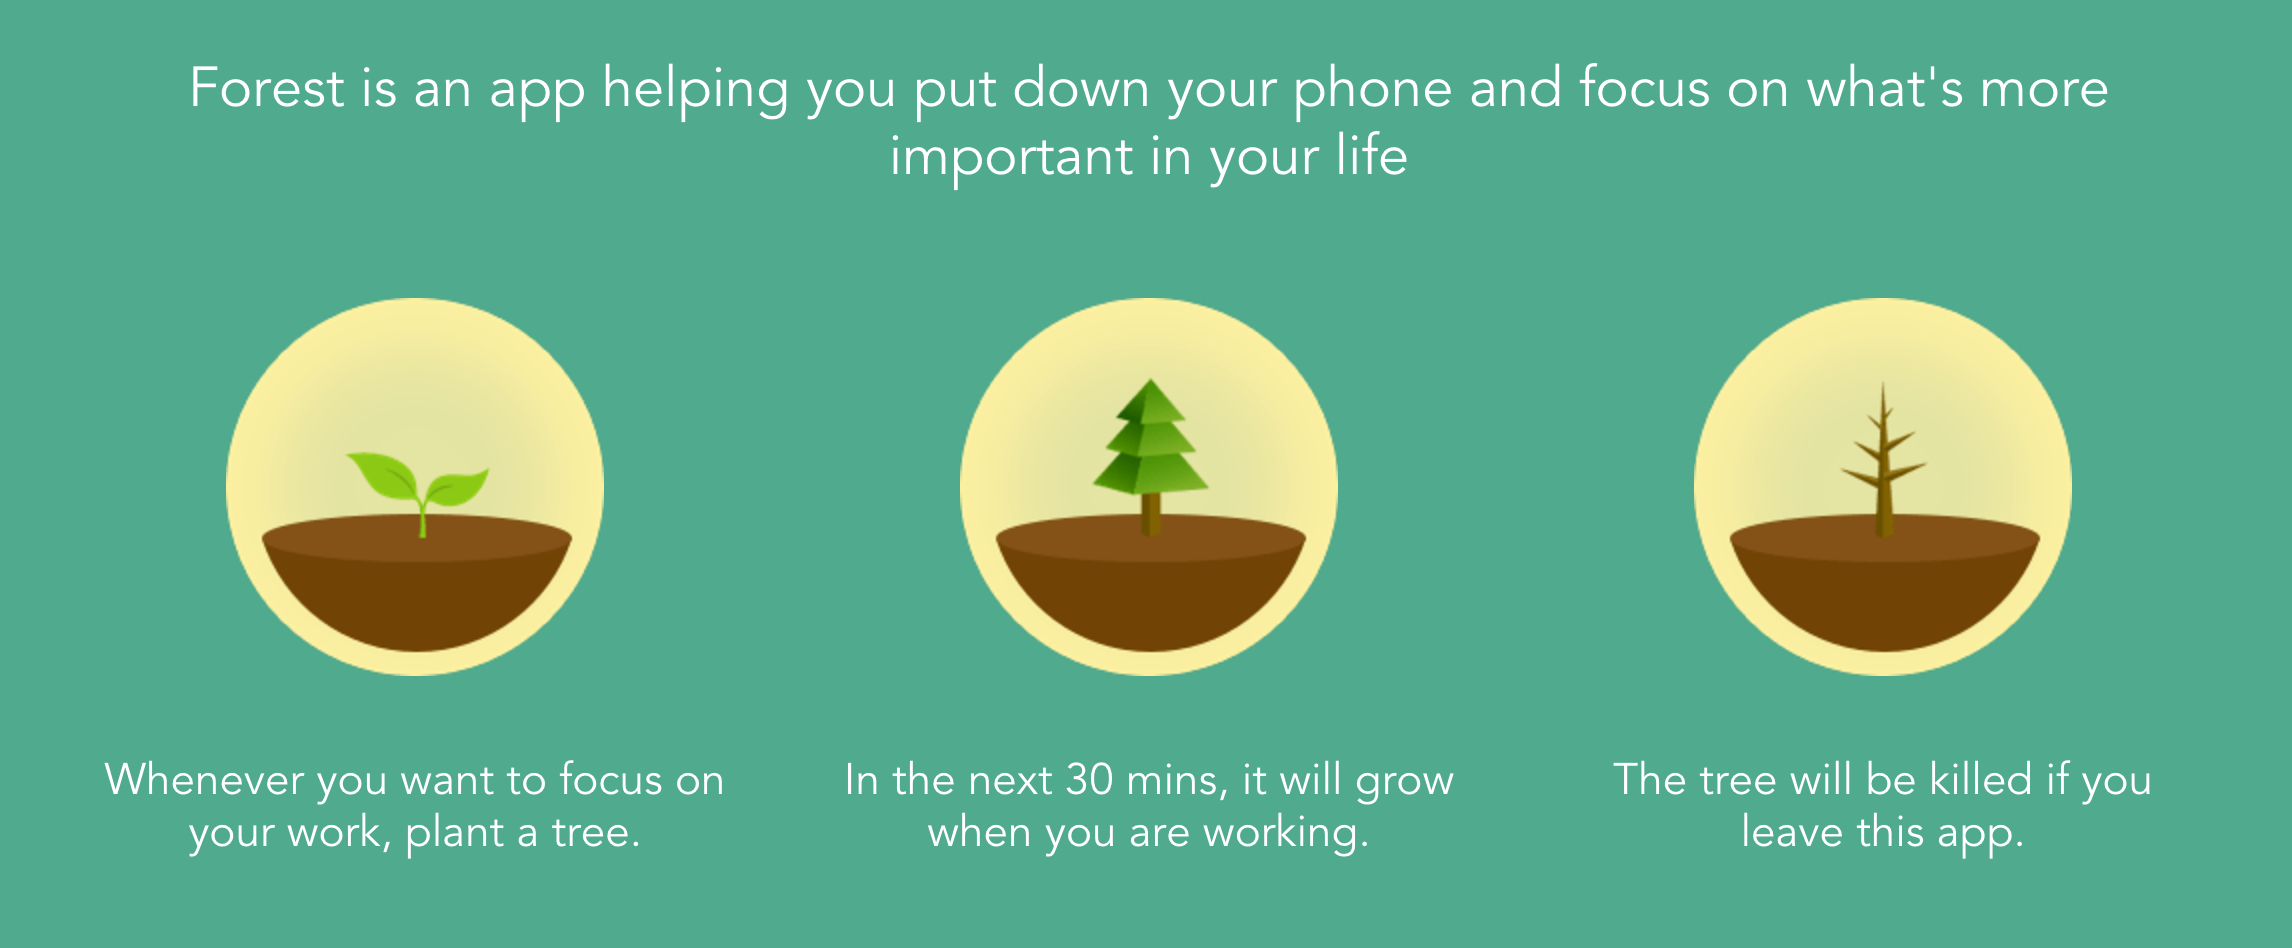 Forest productivity app's premise of growing trees